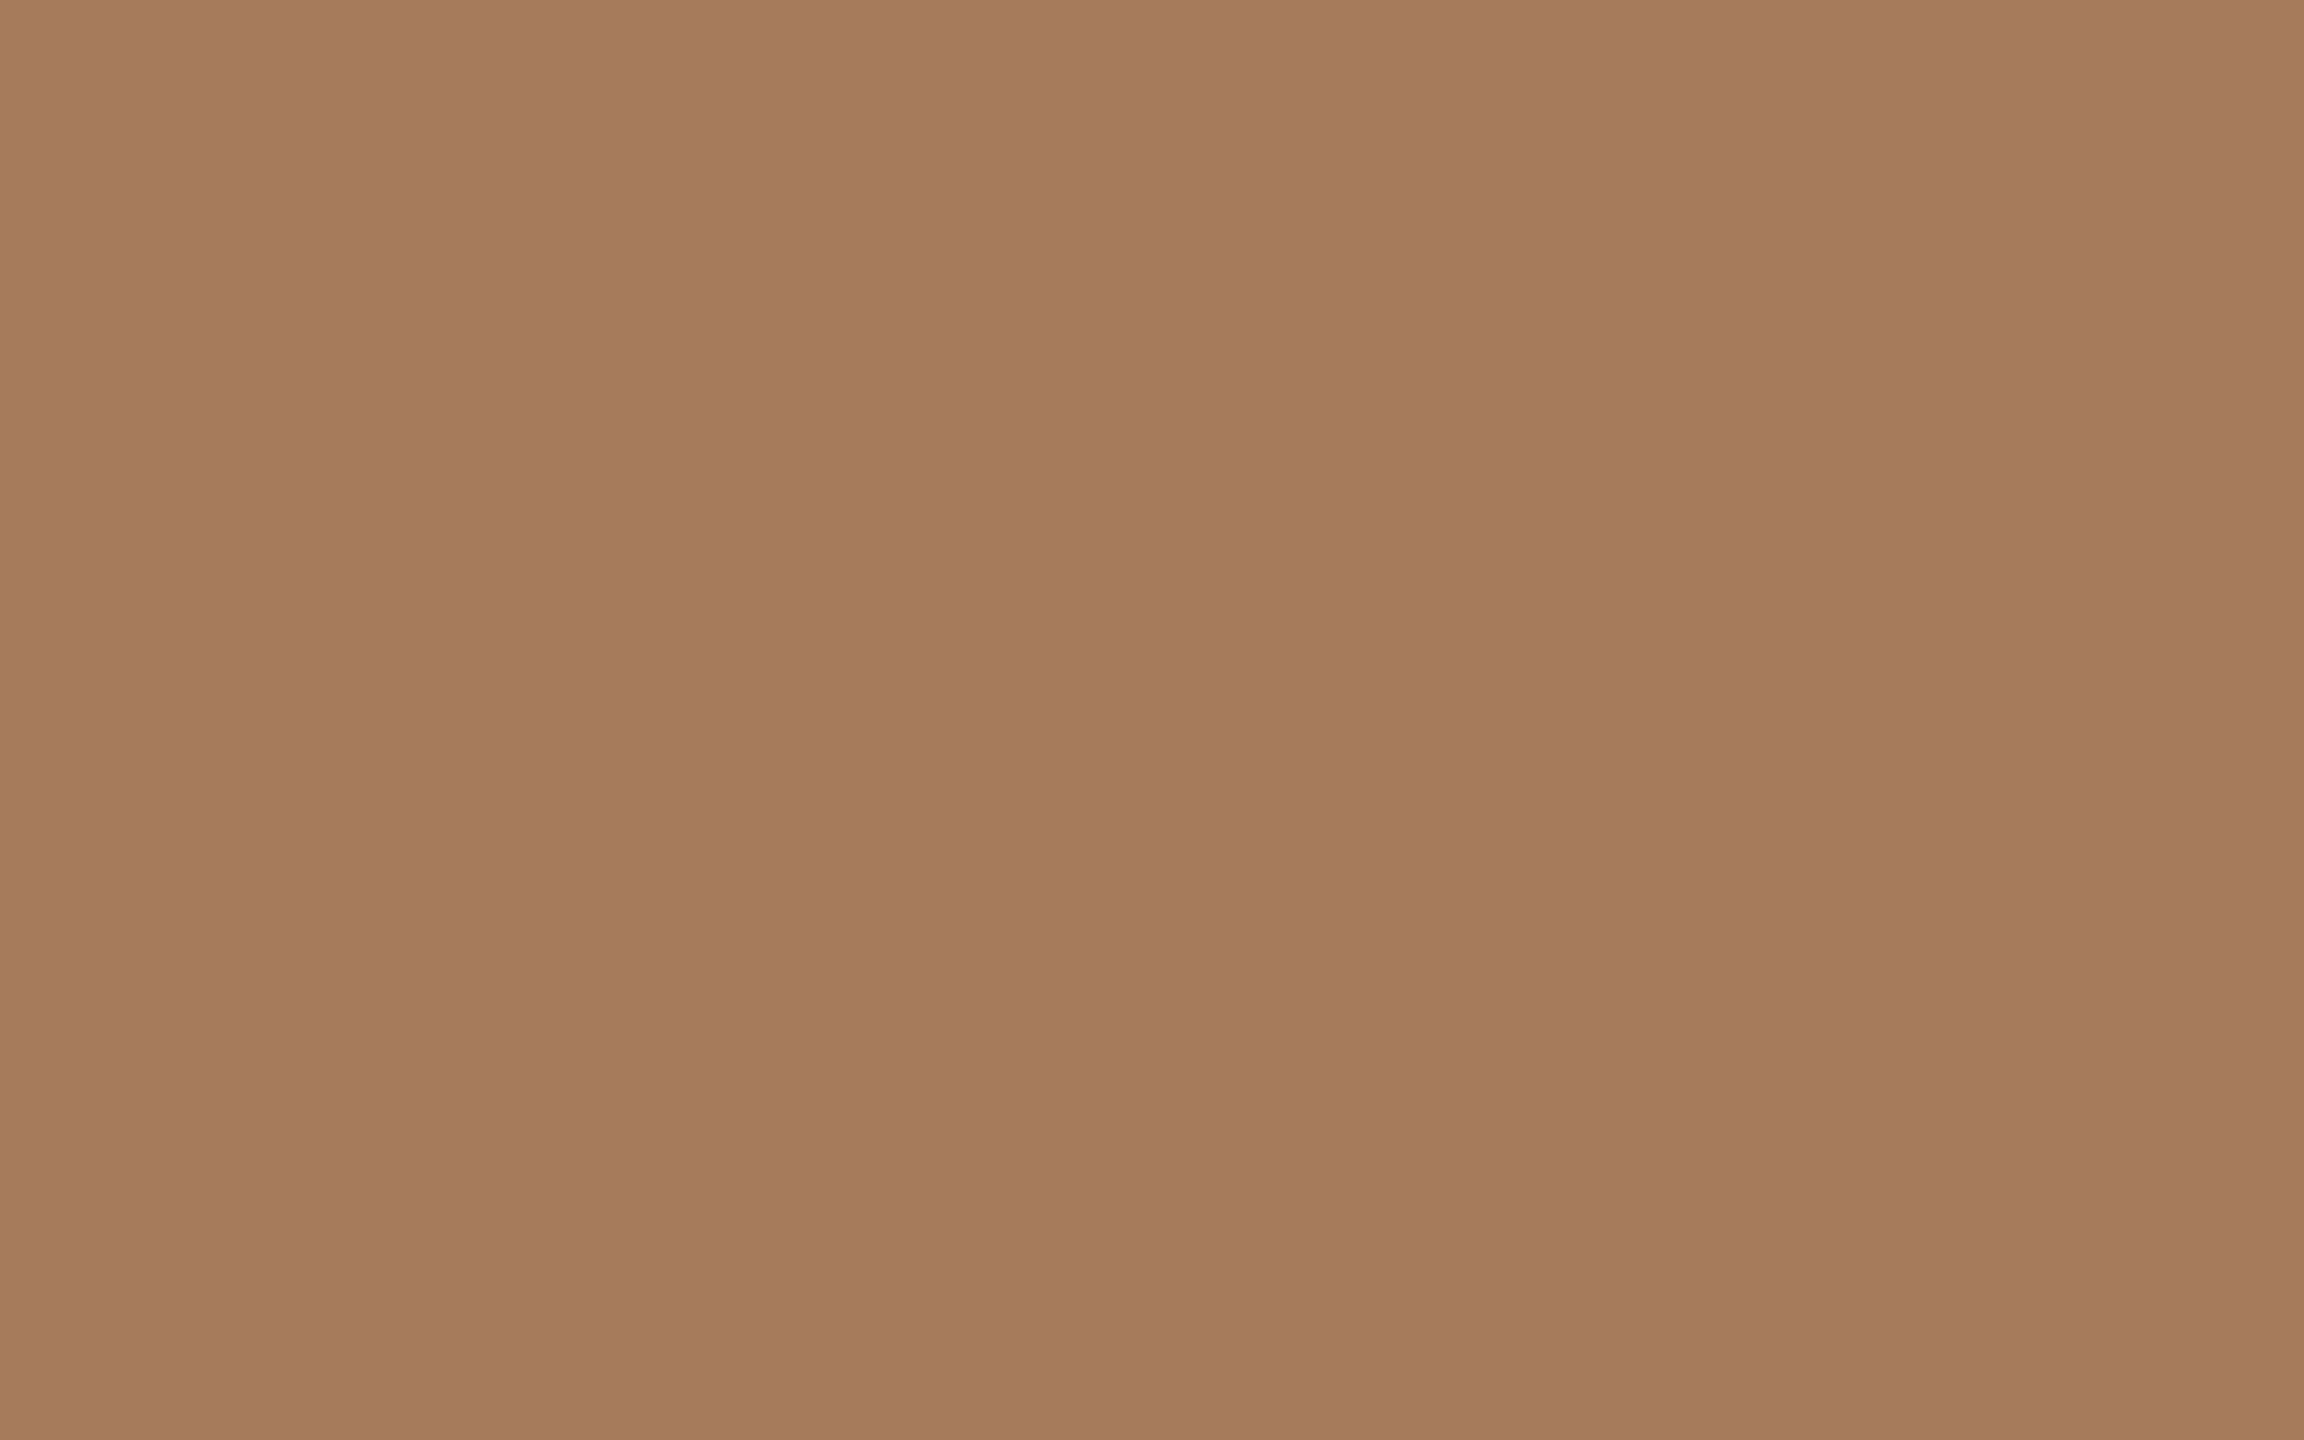 2304x1440 French Beige Solid Color Background